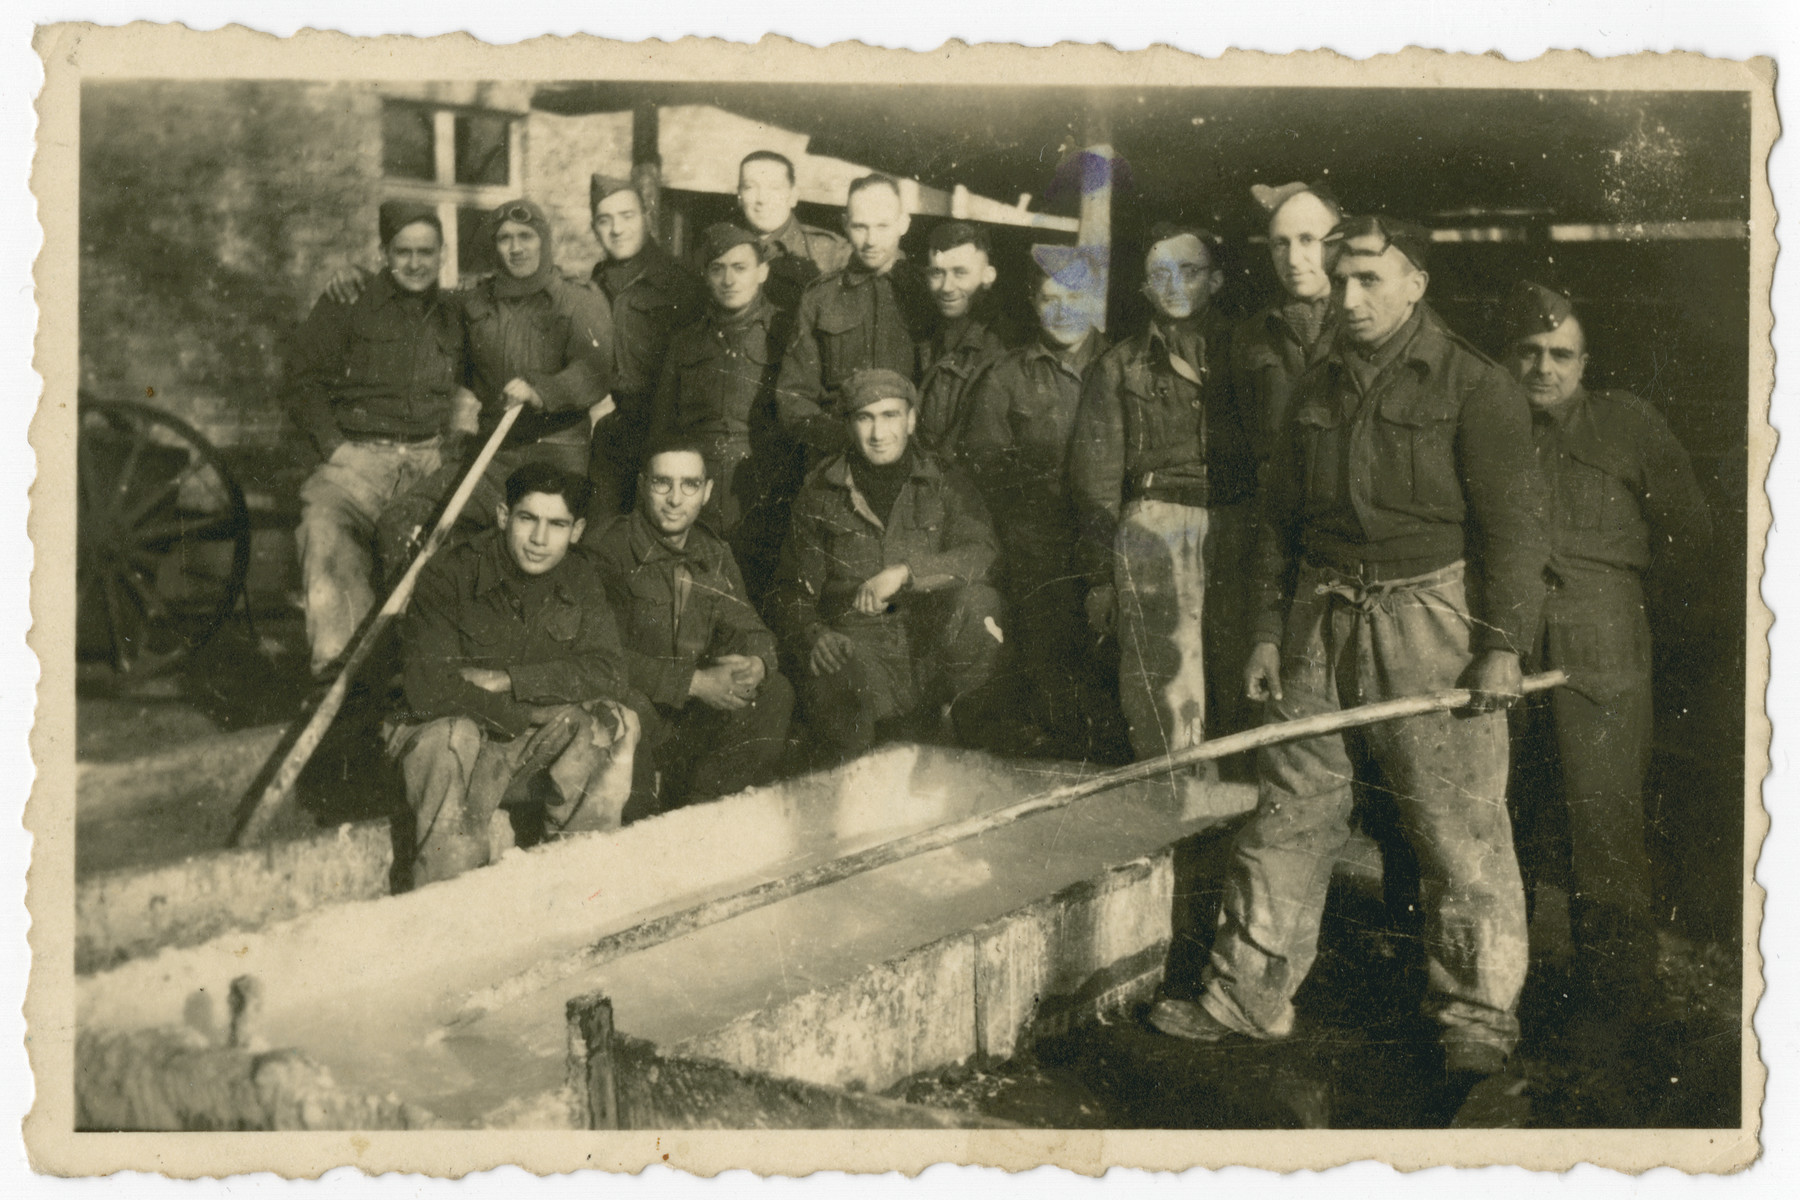 Group portrait of British POWs in Stalag IV A, Elsterhorst.  Among those pictured is Erich de-Beer, a Germany Jew who immigrated illegally to Palesline and joined the British army.